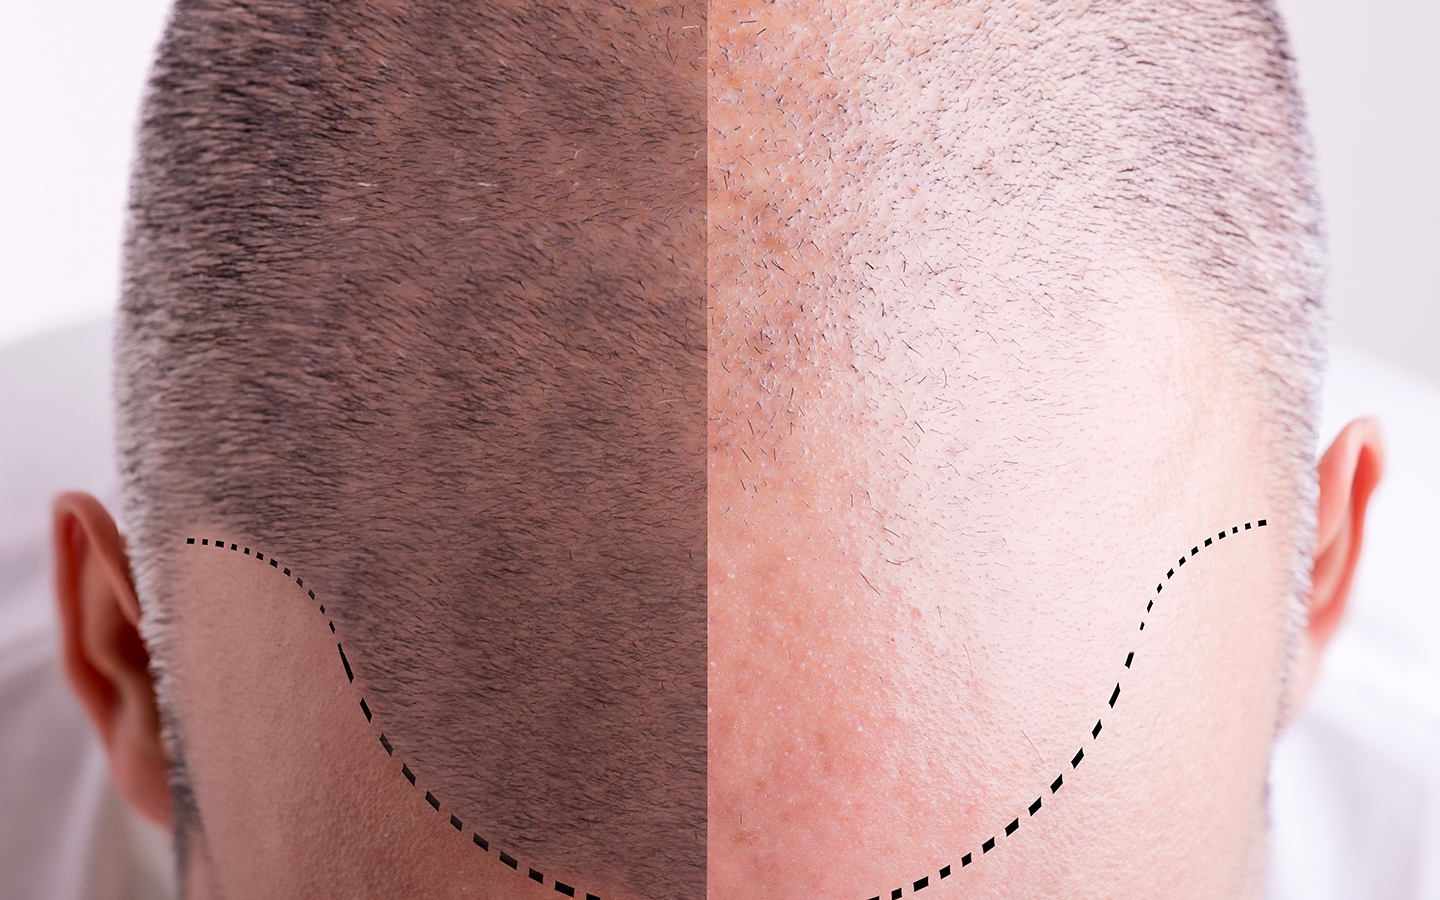 HAIRINK - Pigmentation Capillaire : Les experts de la simulation de cheveux